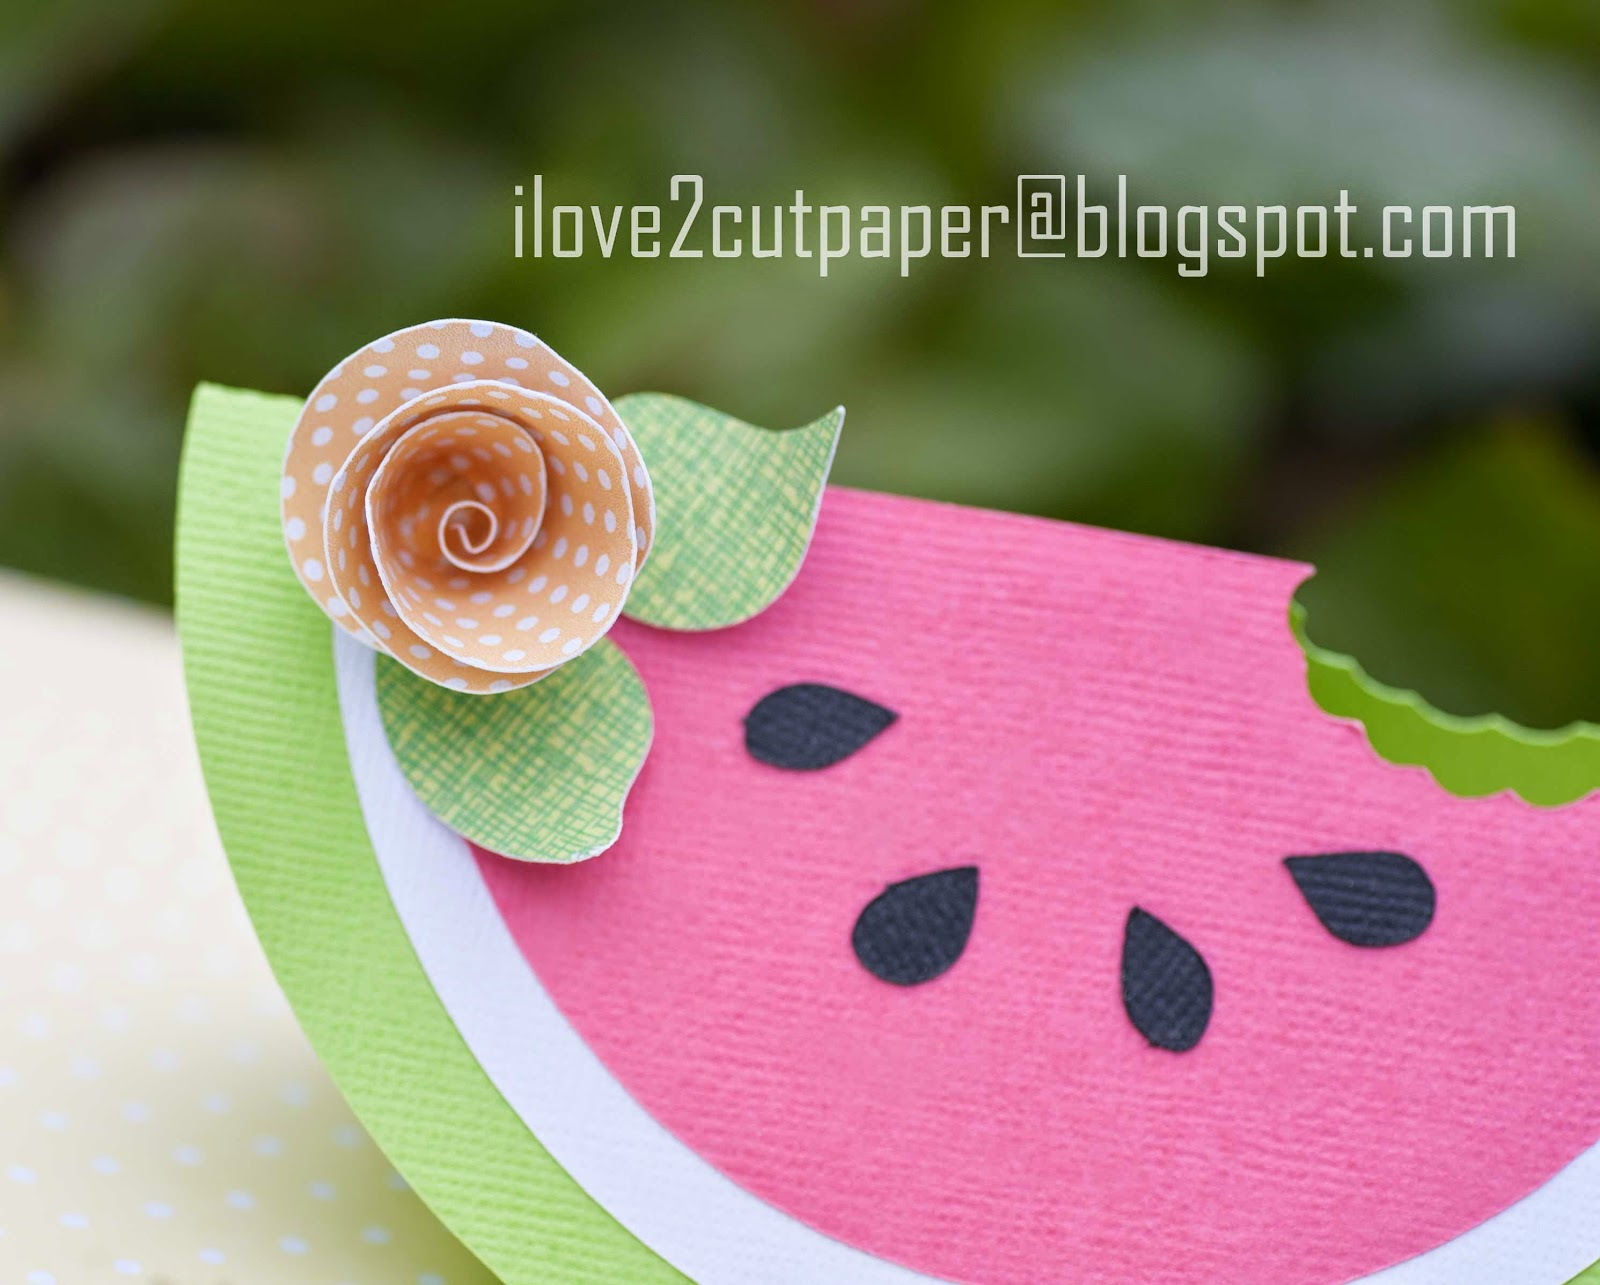 Using digital papers to cut out flower